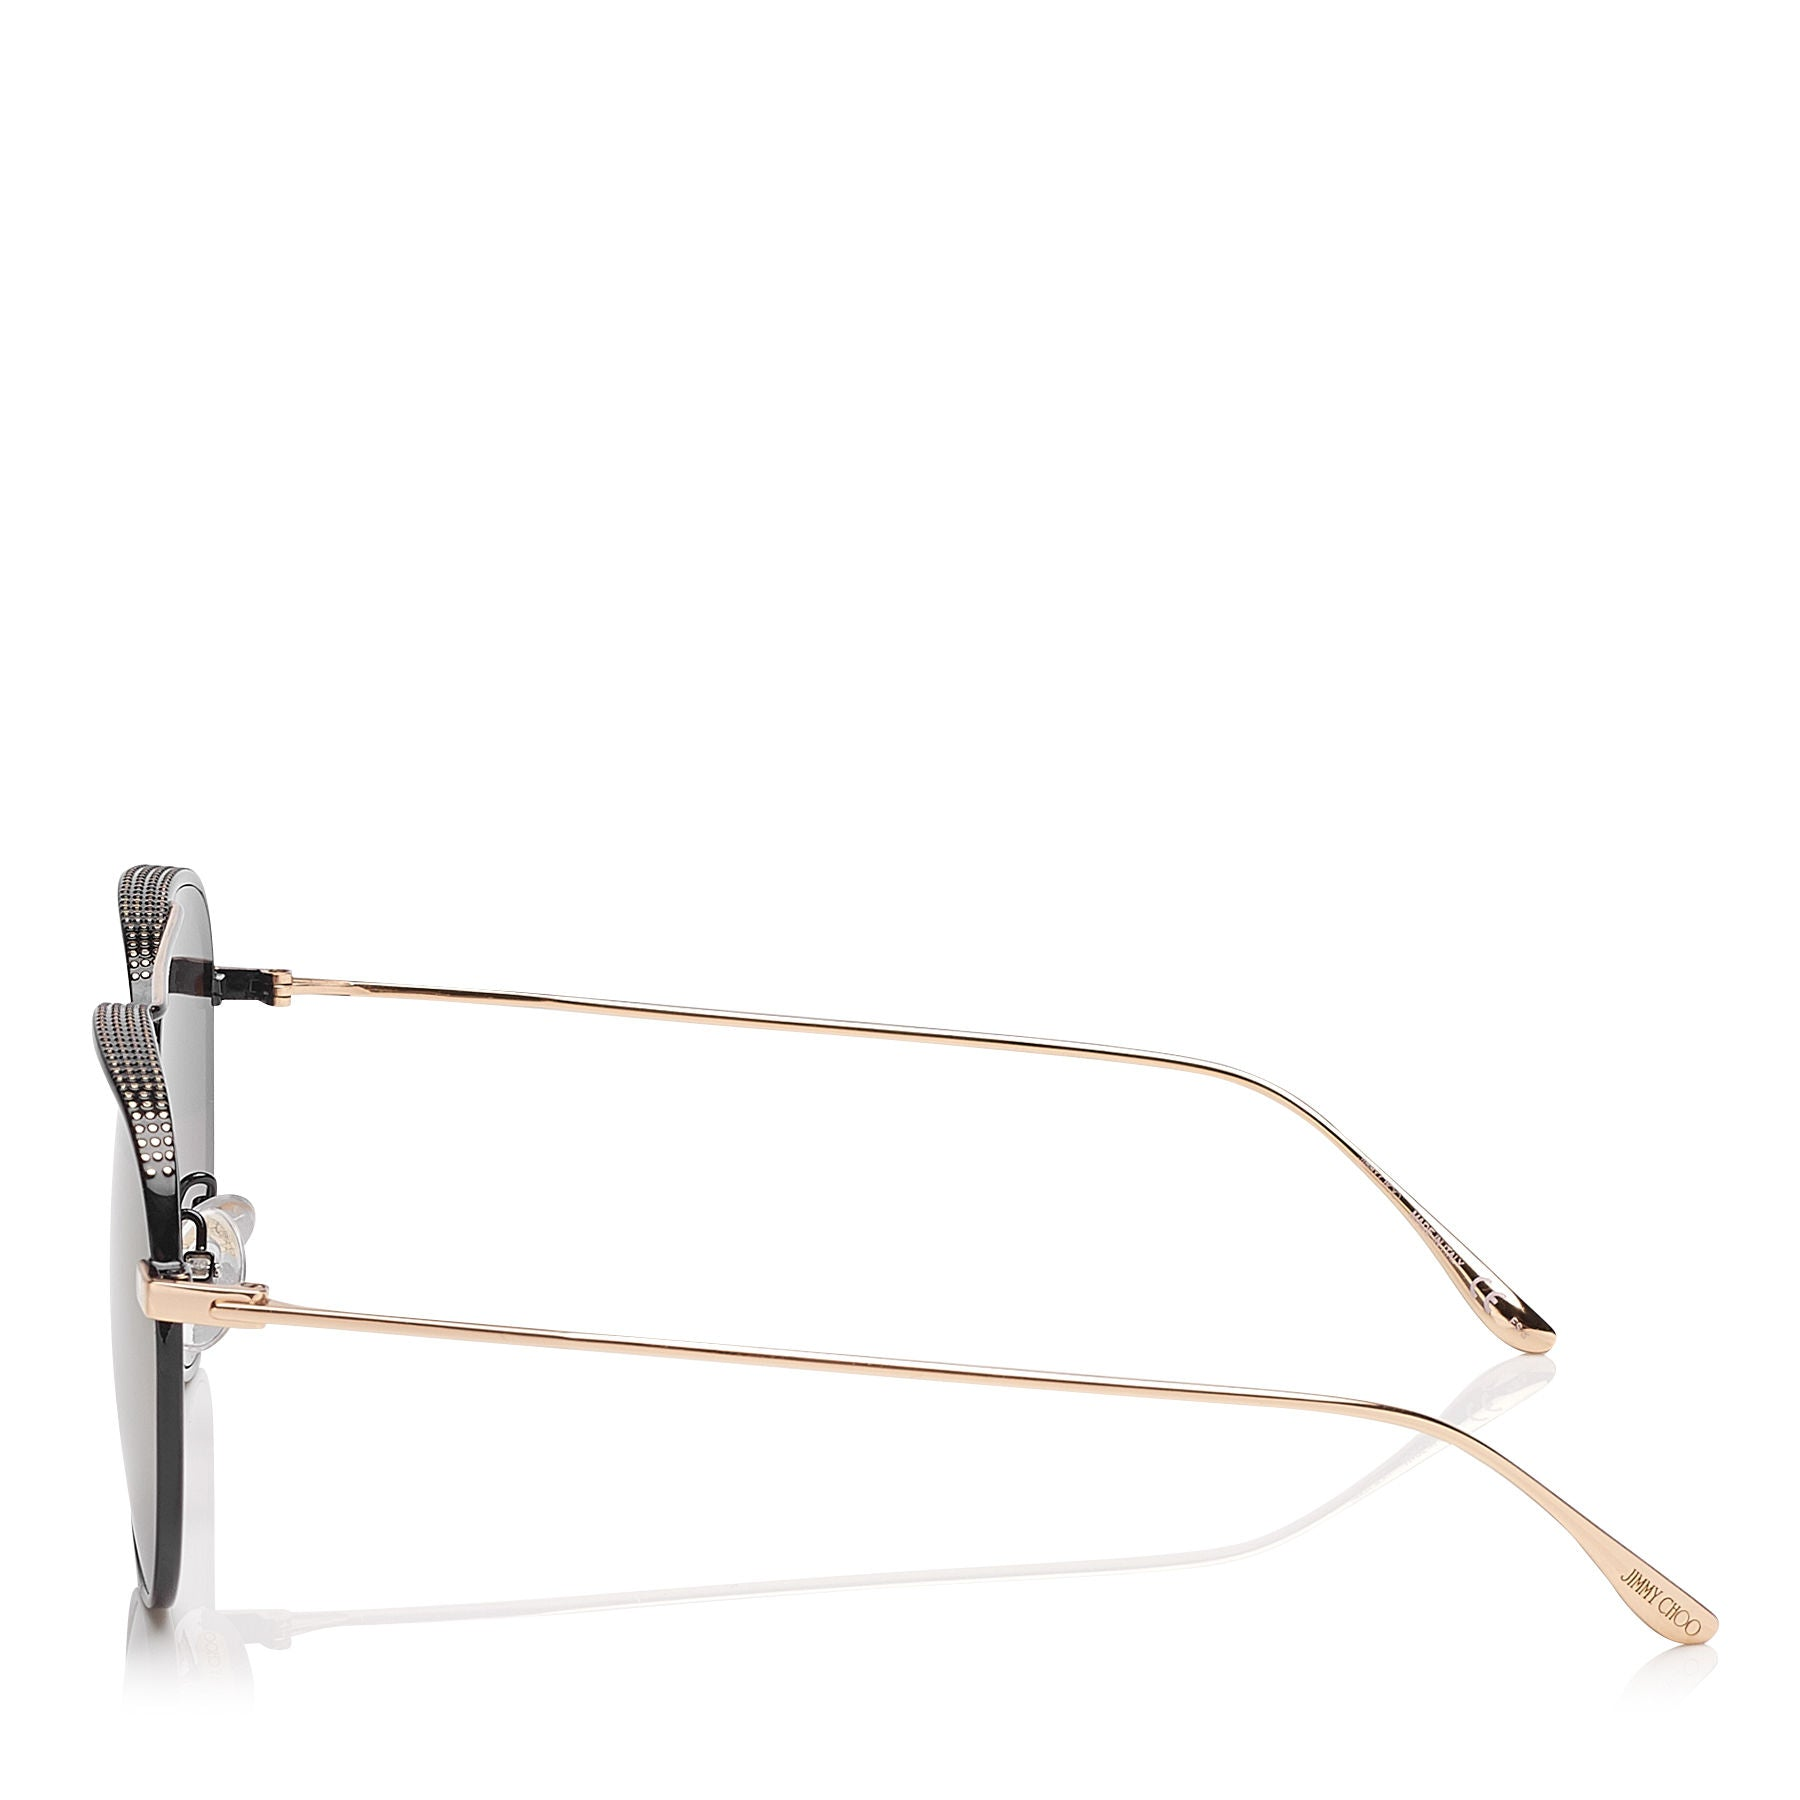 JIMMY CHOO Reto Black Gold Copper Aviator Sunglasses with Micro Studs Detailing ITEM NO. RETOS57EPL0